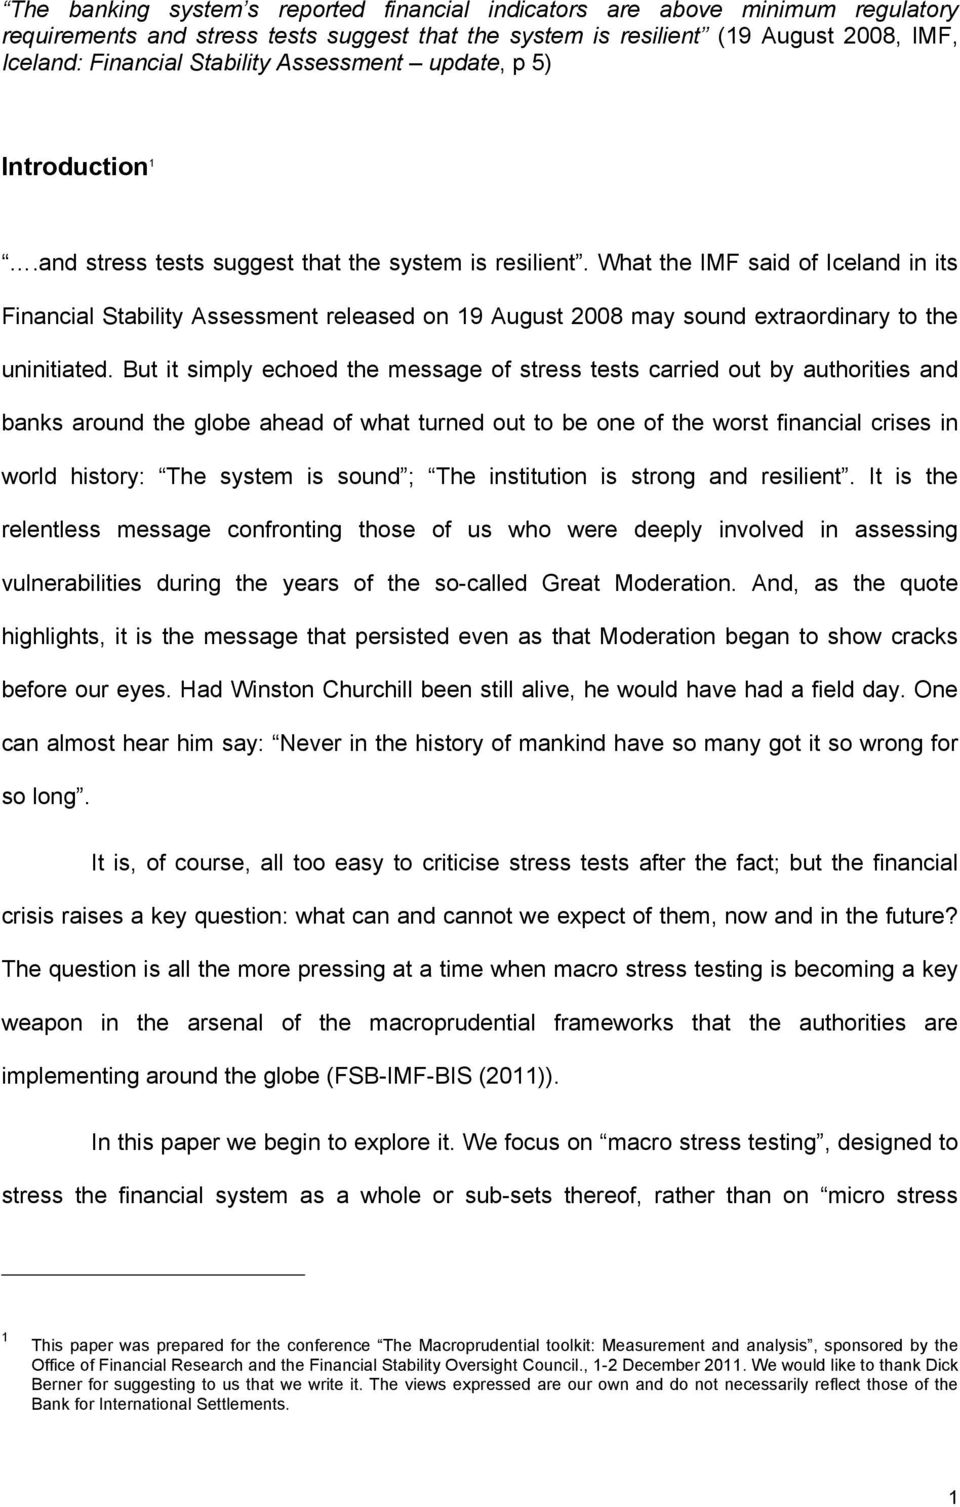 What the IMF said of Iceland in its Financial Stability Assessment released on 19 August 2008 may sound extraordinary to the uninitiated.